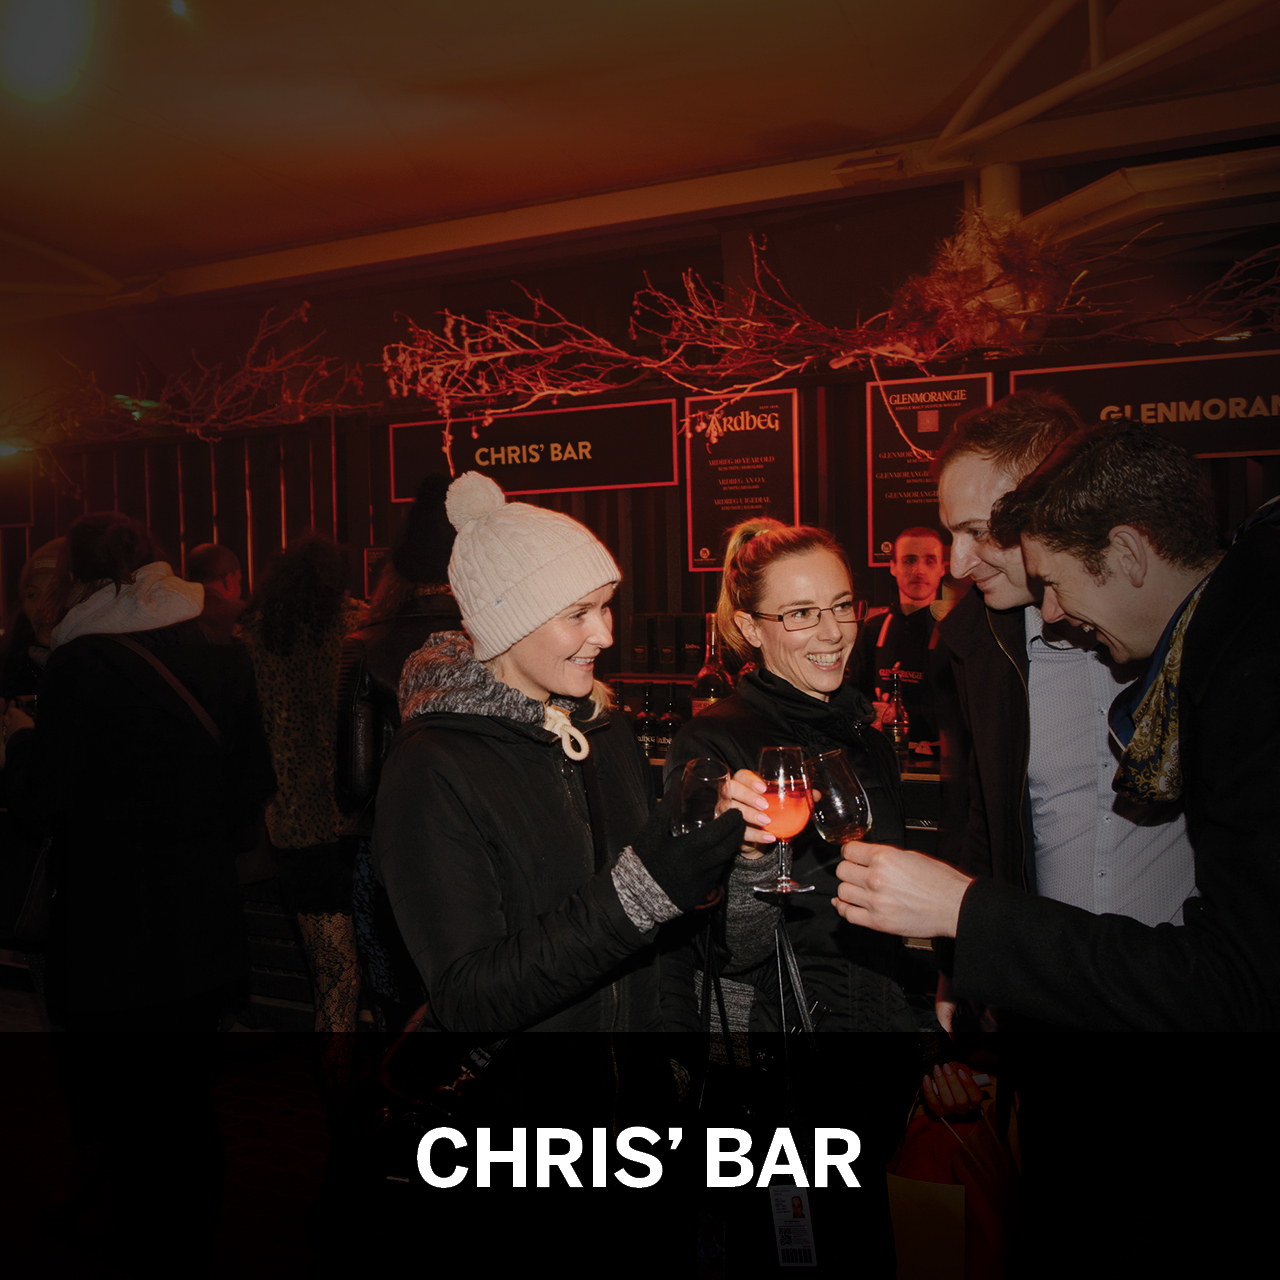 Chris' Bar